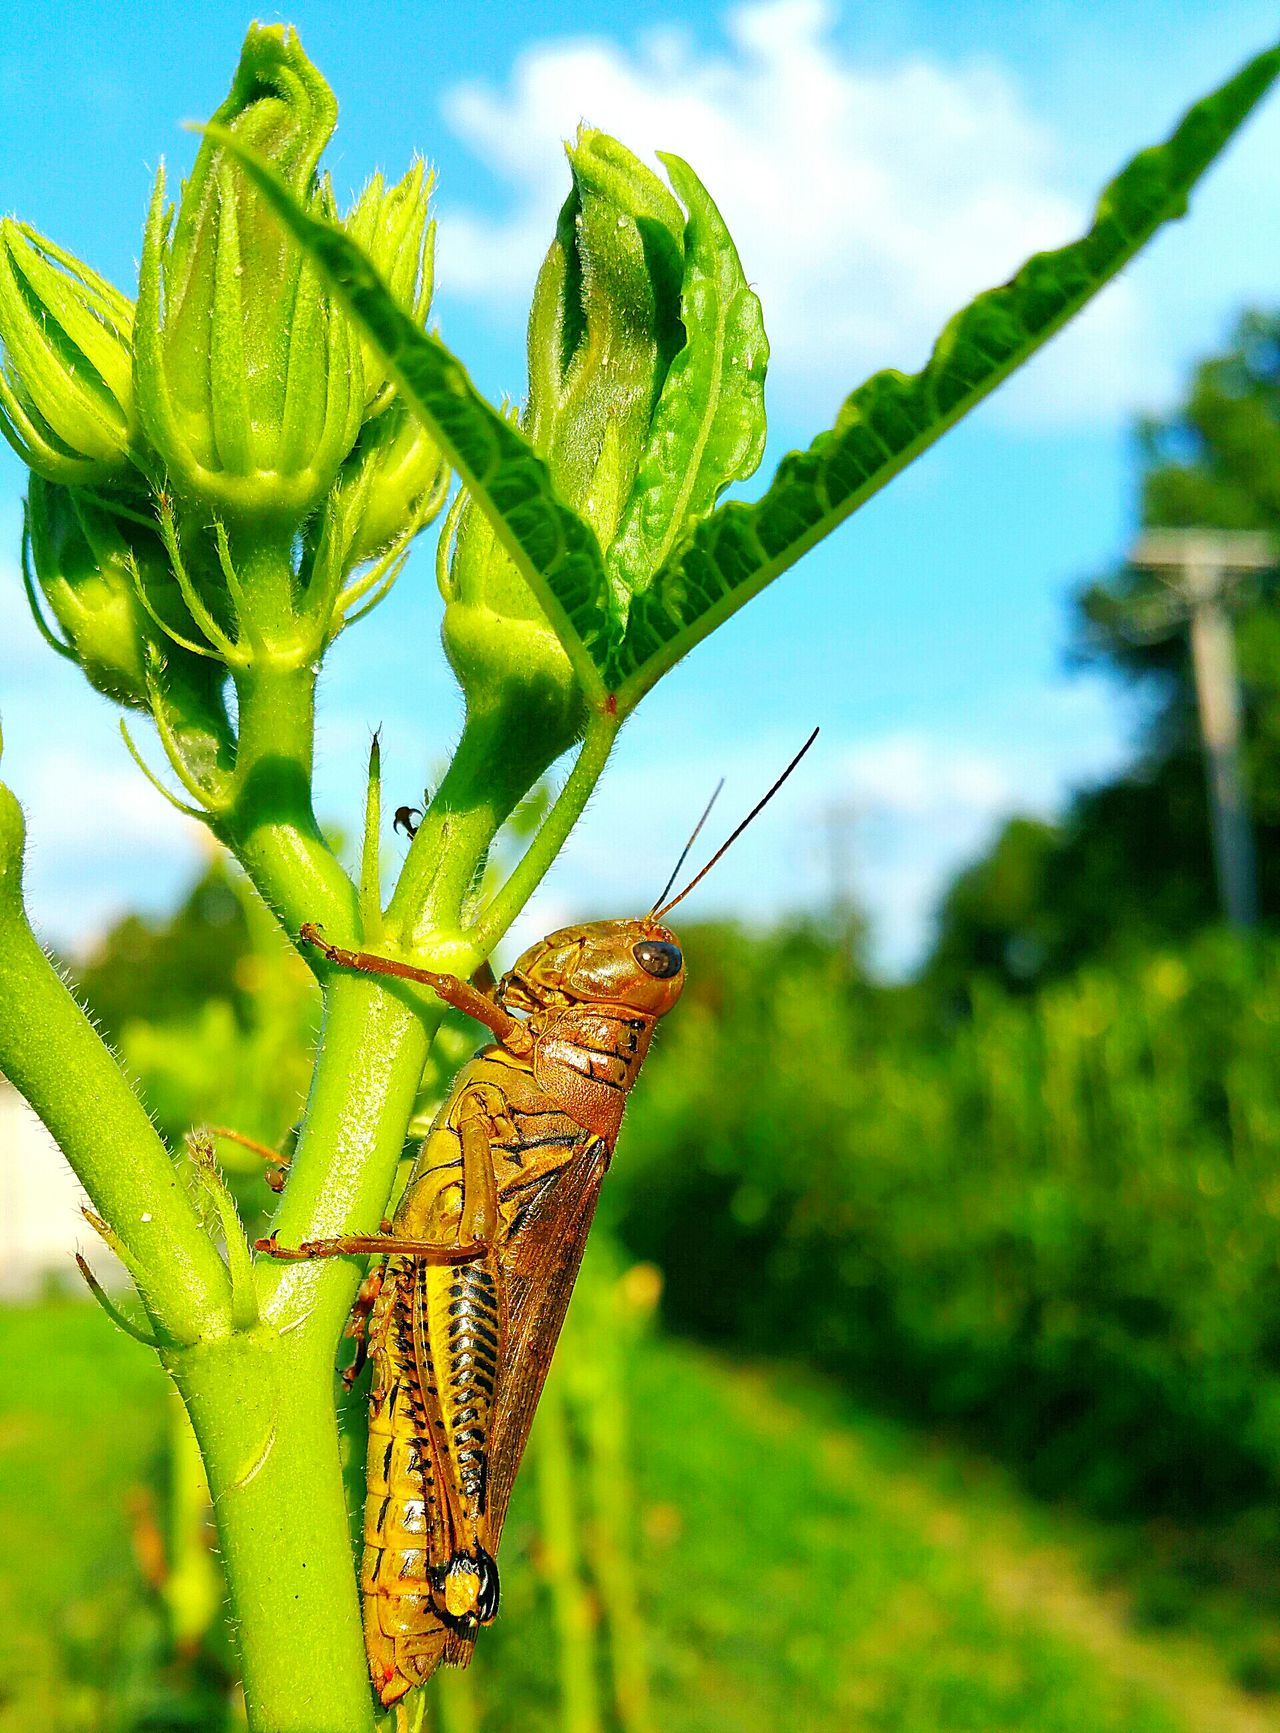 One Animal Insect Animal Themes Green Color Leaf Wildlife Animals In The Wild Plant Close-up Sky Growth Focus On Foreground Nature Zoology Day Outdoors Green Beauty In Nature No People Freshness Cricket! Crickets No Filter